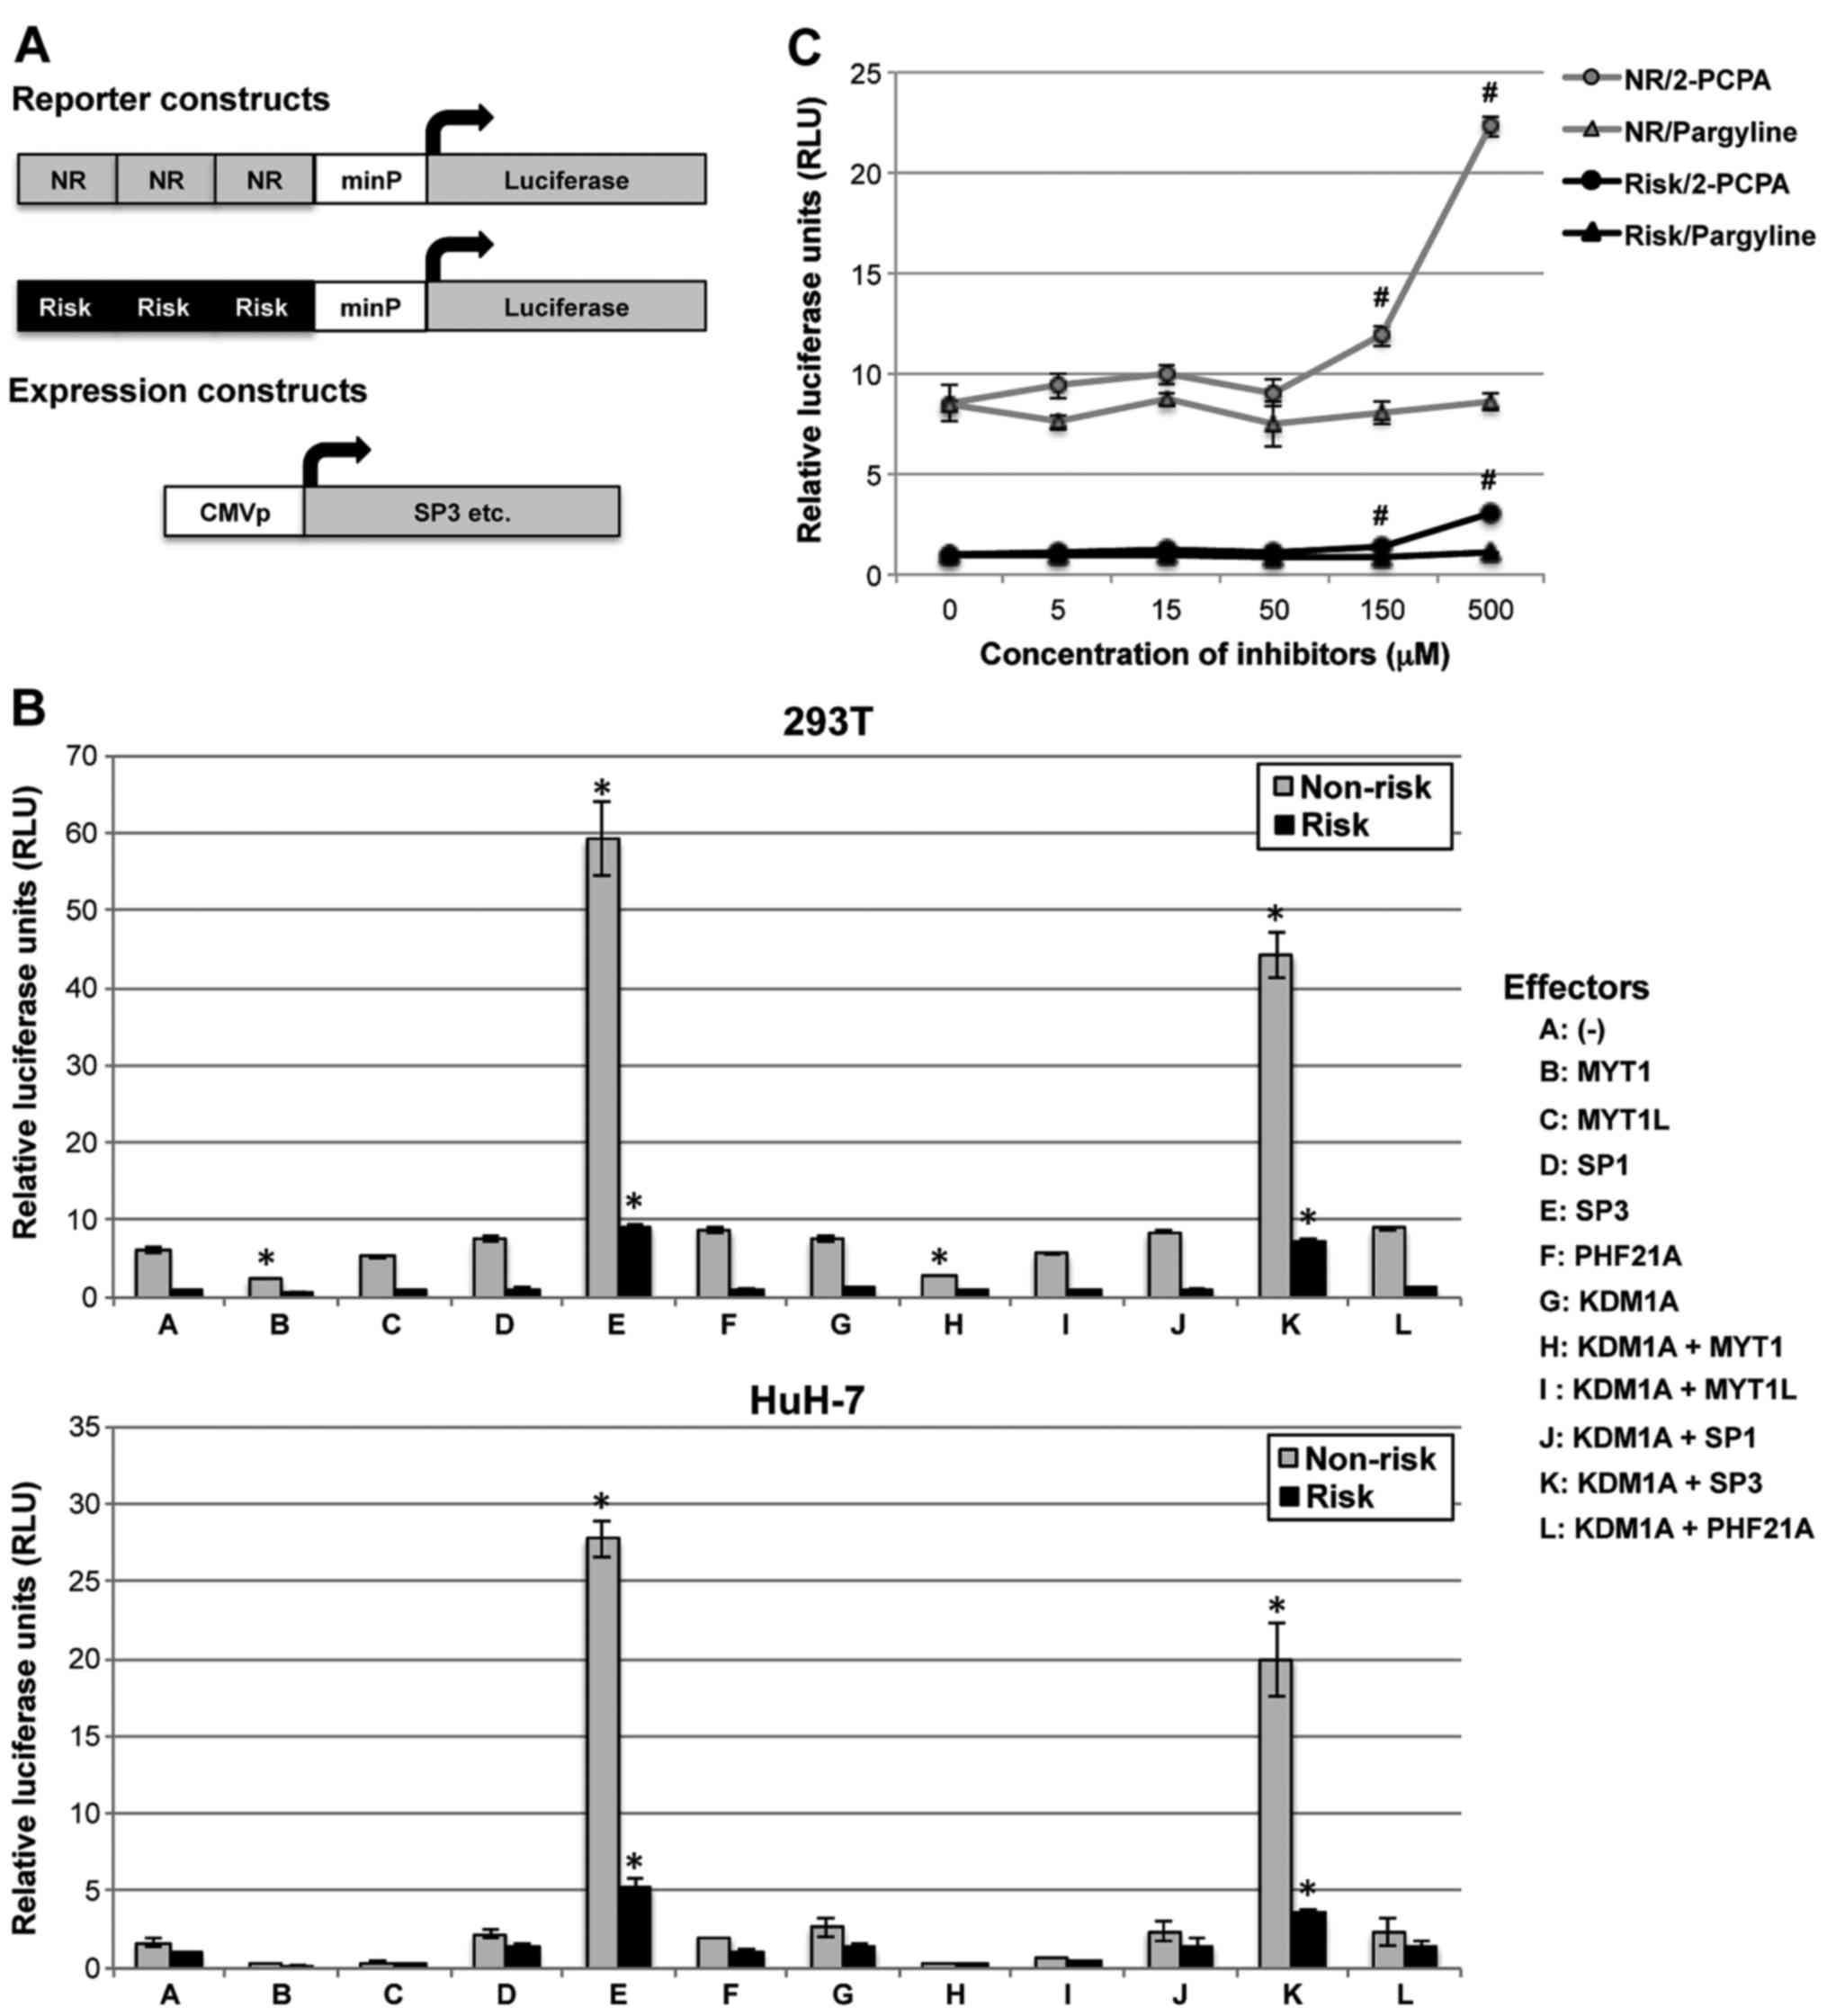 A type 2 diabetes-associated SNP in KCNQ1 (rs163184) modulates the